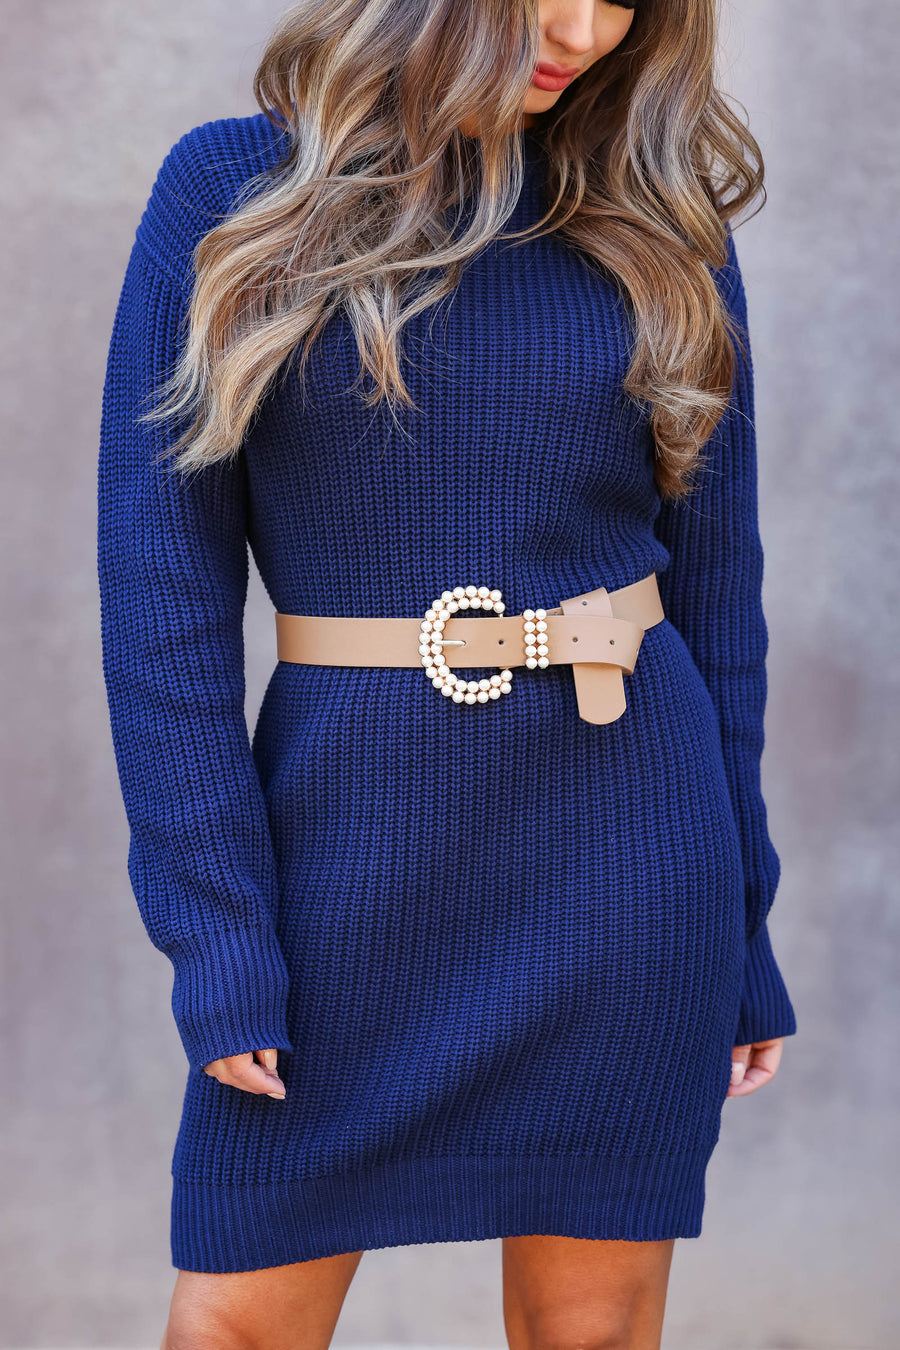 CBRAND Self Made Sweater Dress - Navy womens trendy relaxed sweater dress closet candy front